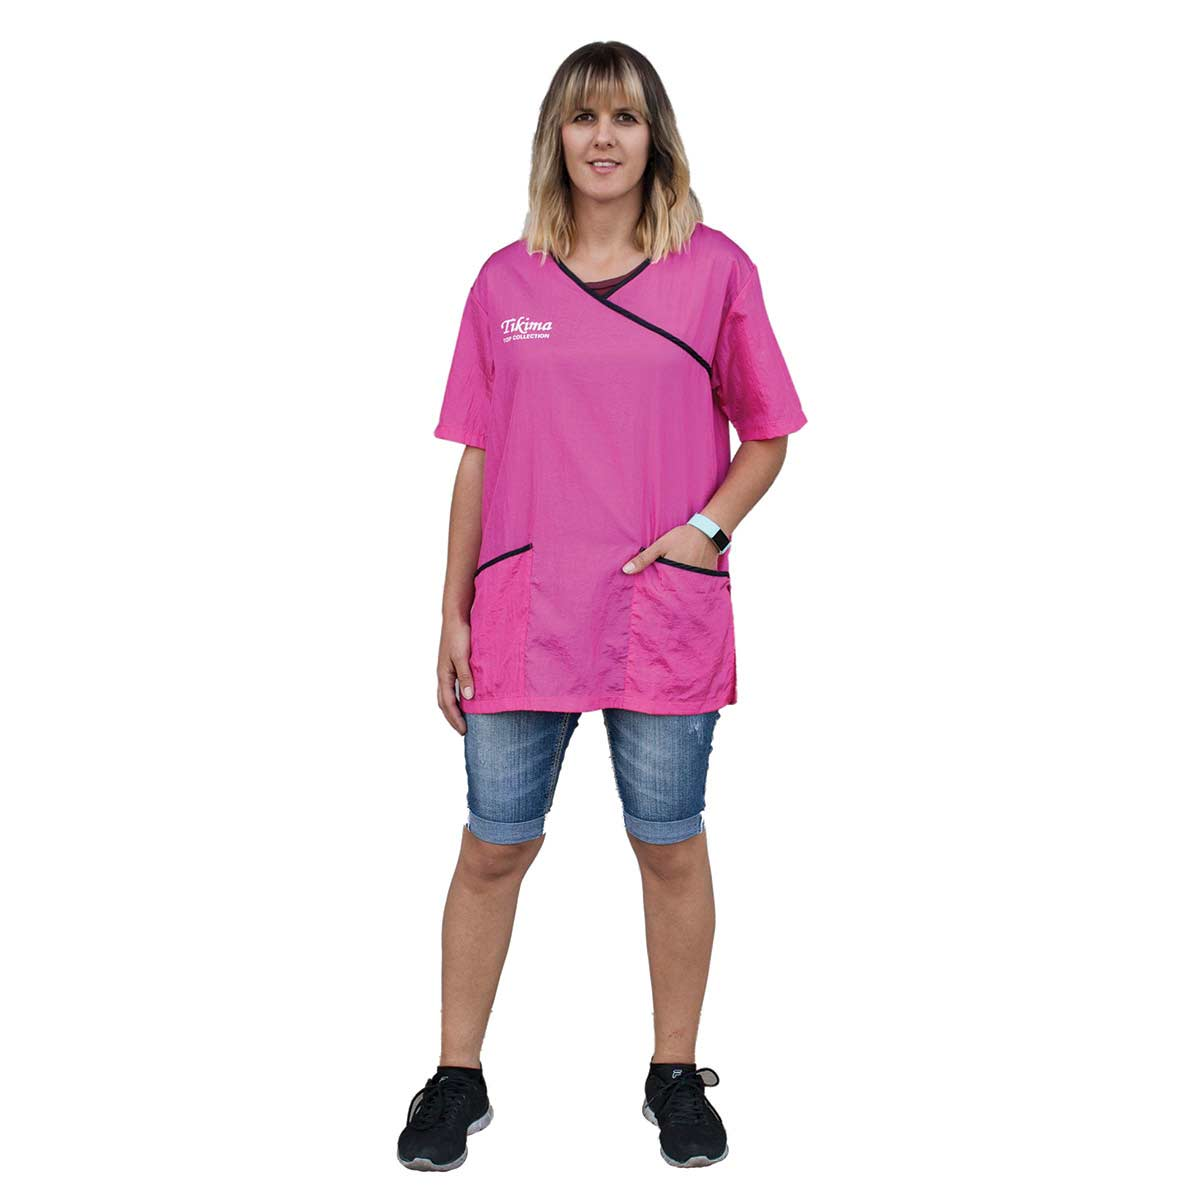 Pink 2X Large Tikima Fiori Shirt for Groomers